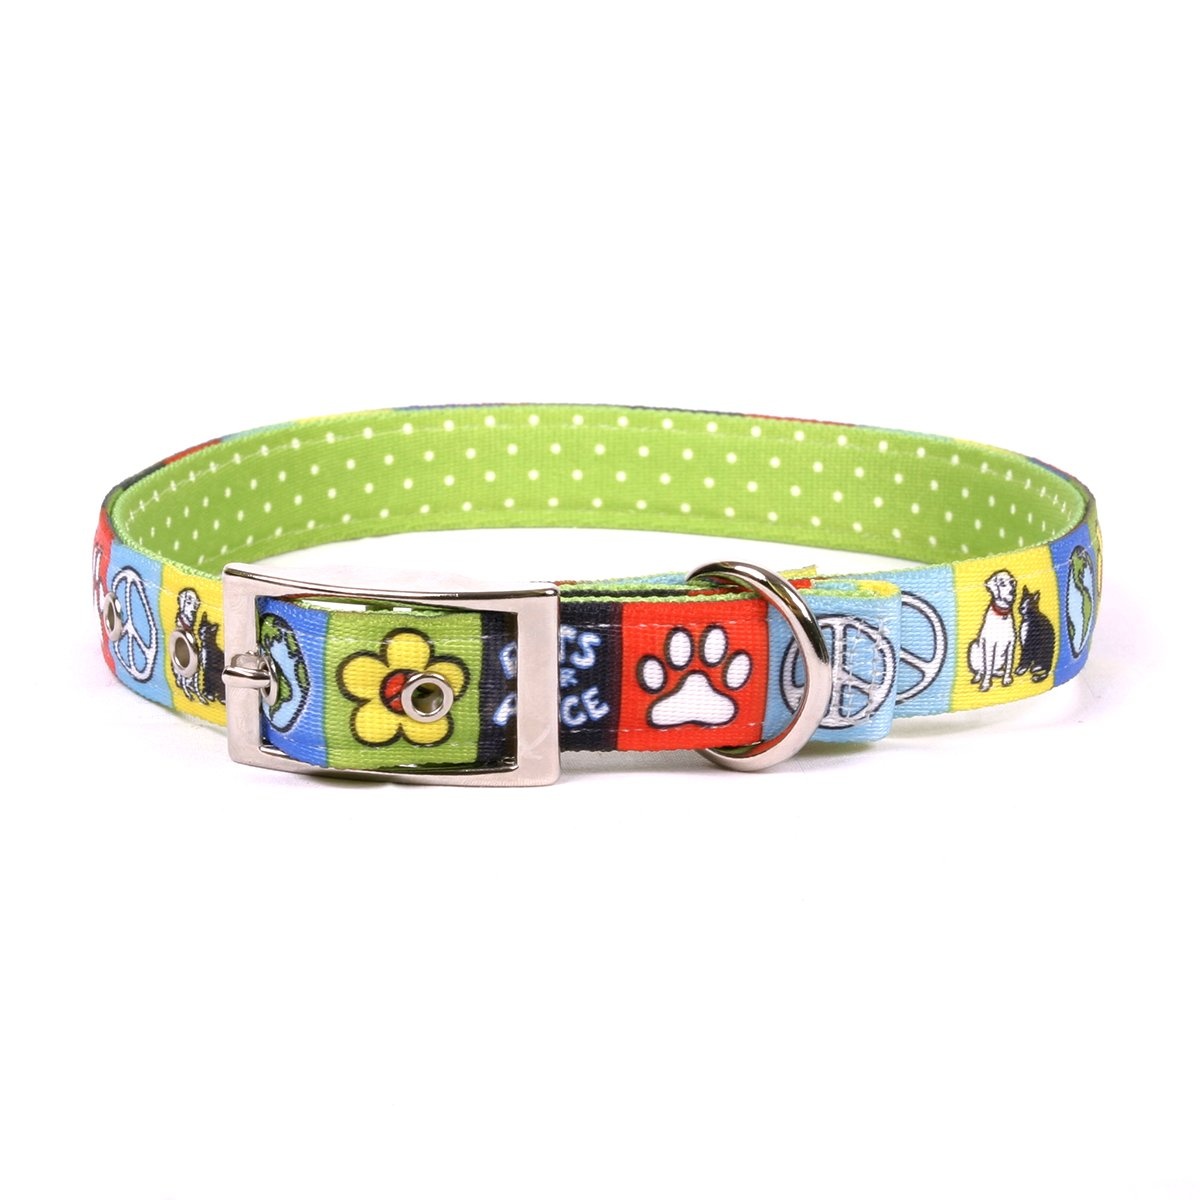 Yellow Dog Design Pets for Peace Uptown Dog Collar, X-Large-1'' Wide and fits Neck Sizes 24 to 27'' by Yellow Dog Design